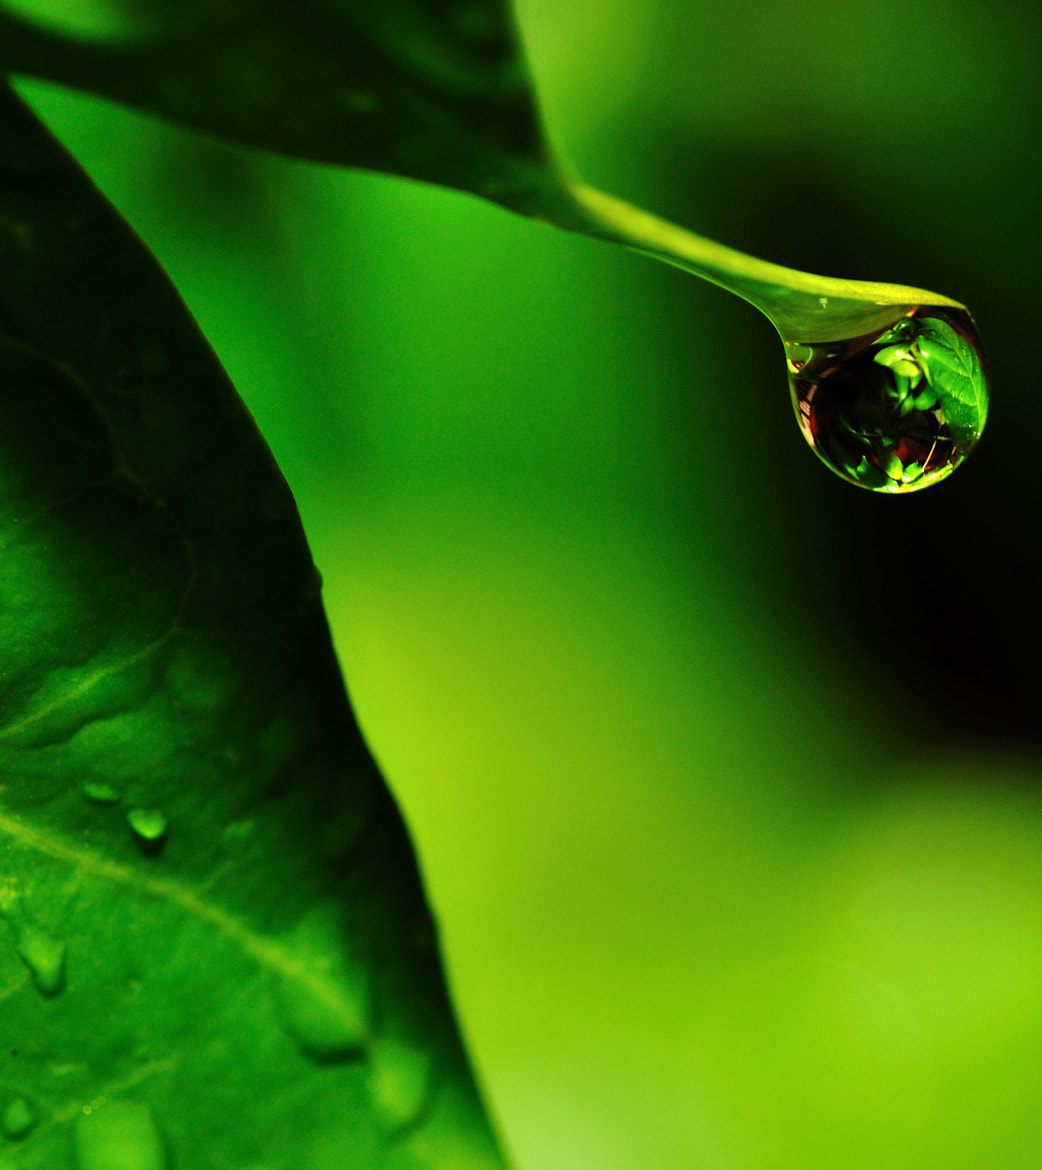 Photograph A drop of Earth by Suresh Menon on 500px